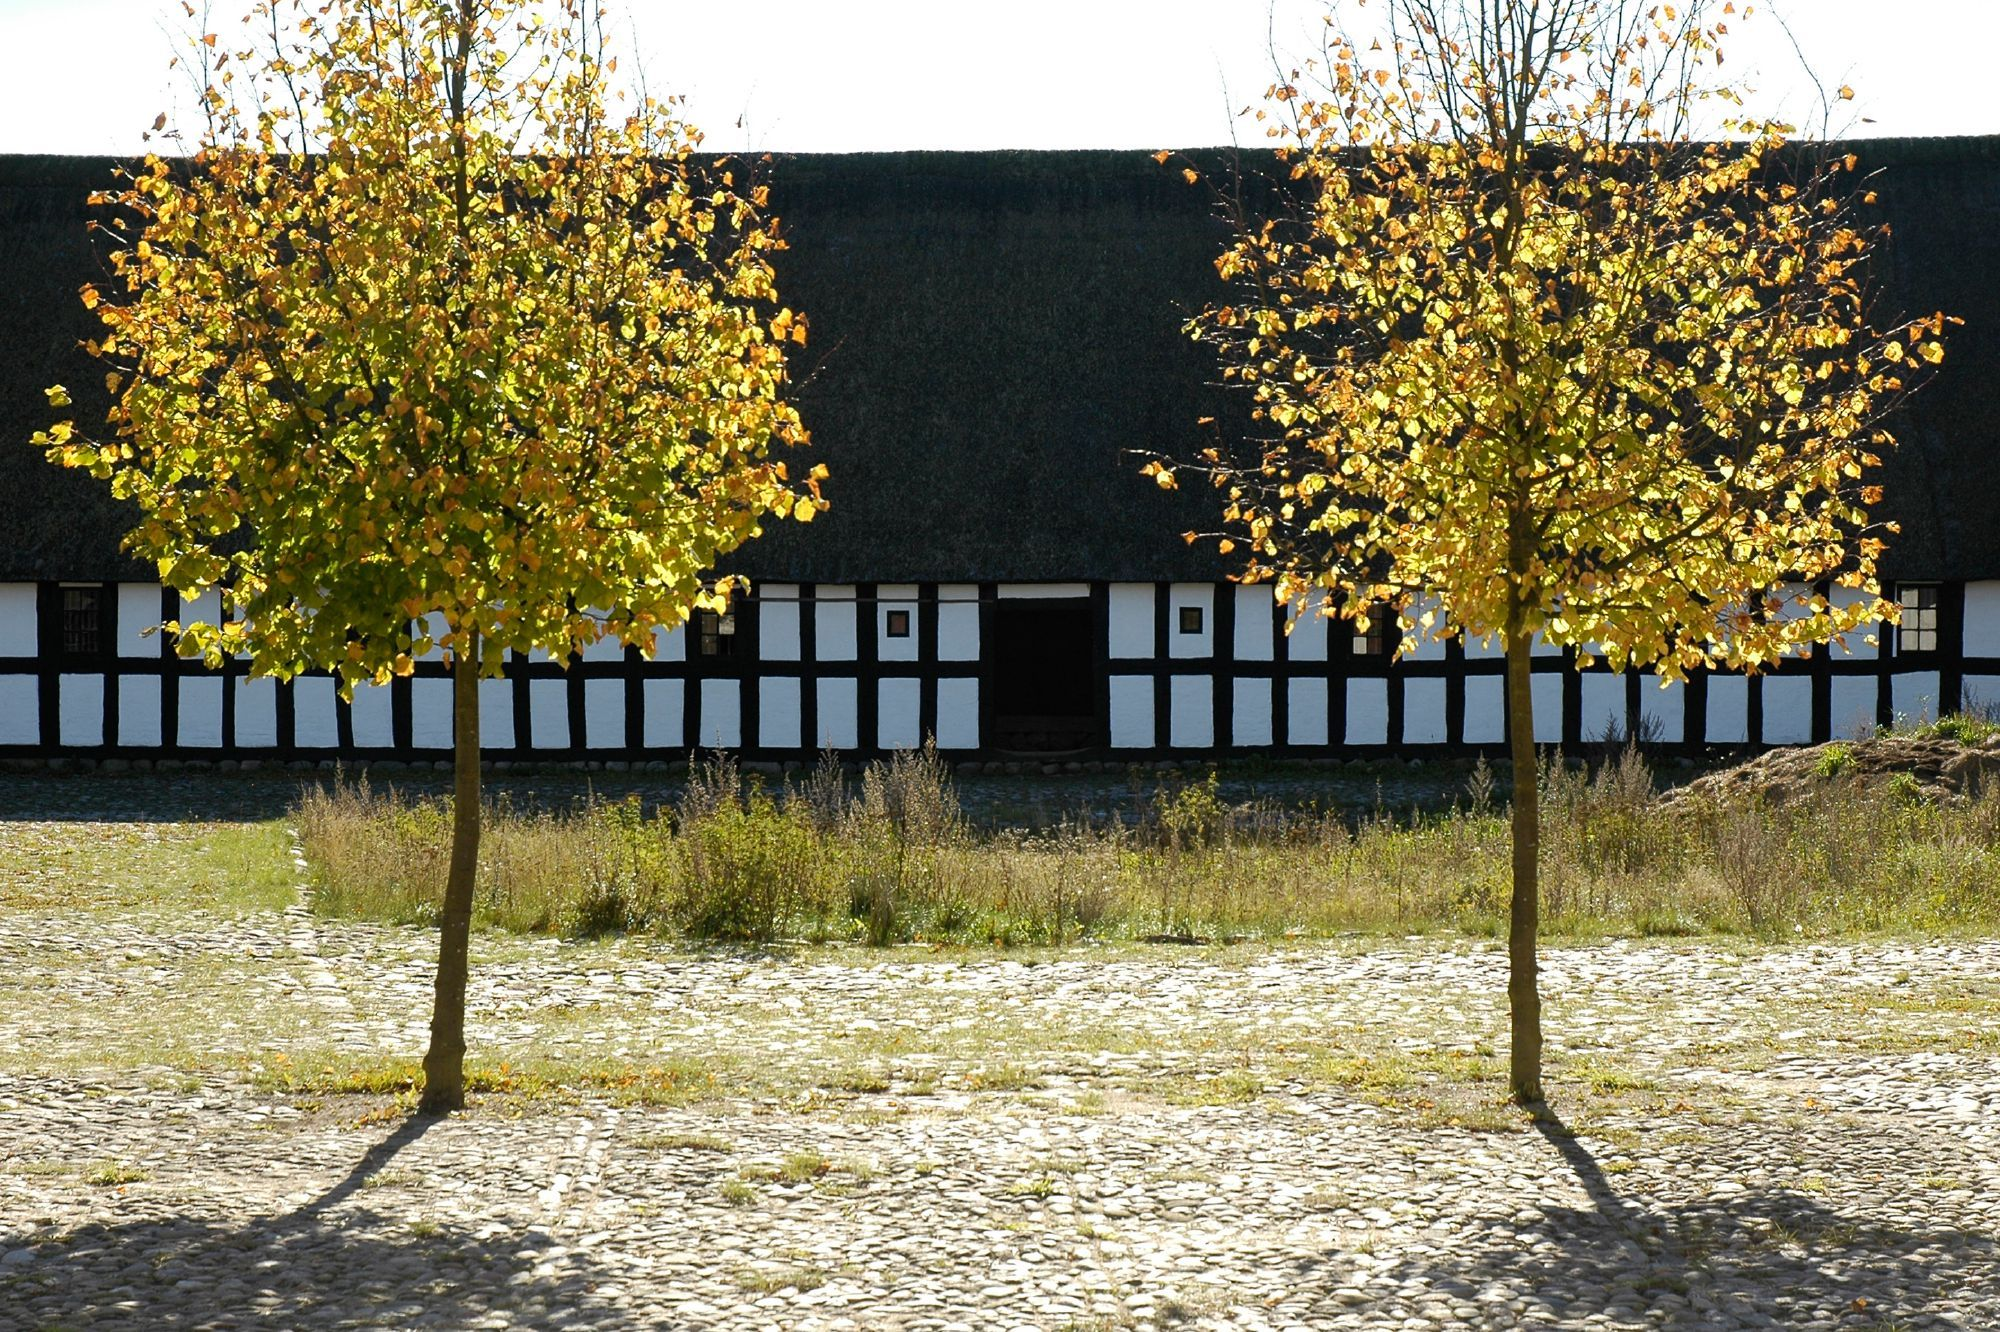 Autumn trees by the barn of Fjellerup manor at The Open Air Museum.